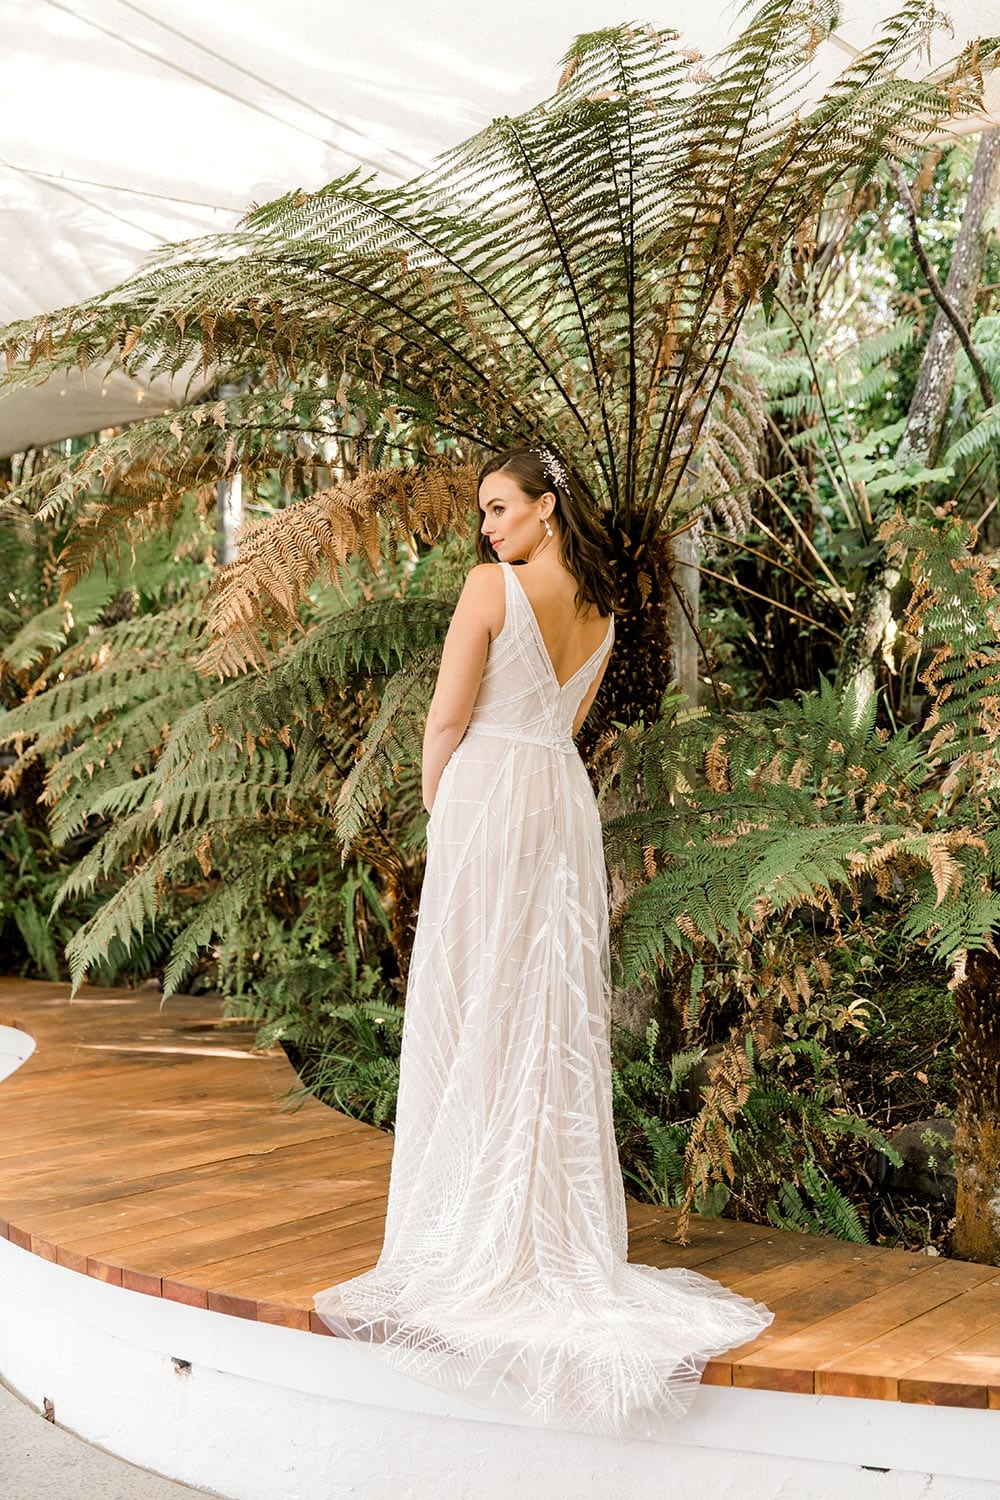 Amber Wedding Dress from Vinka Design. Beautiful wedding dress with V-neckline bodice & V-shaped back on a soft blush/light nude base. Rich beading sculpts the waist & relaxed-fit skirt falls to a train. Full length of dress from the side. Photographed at Tui Hills by Emmaline Photography.